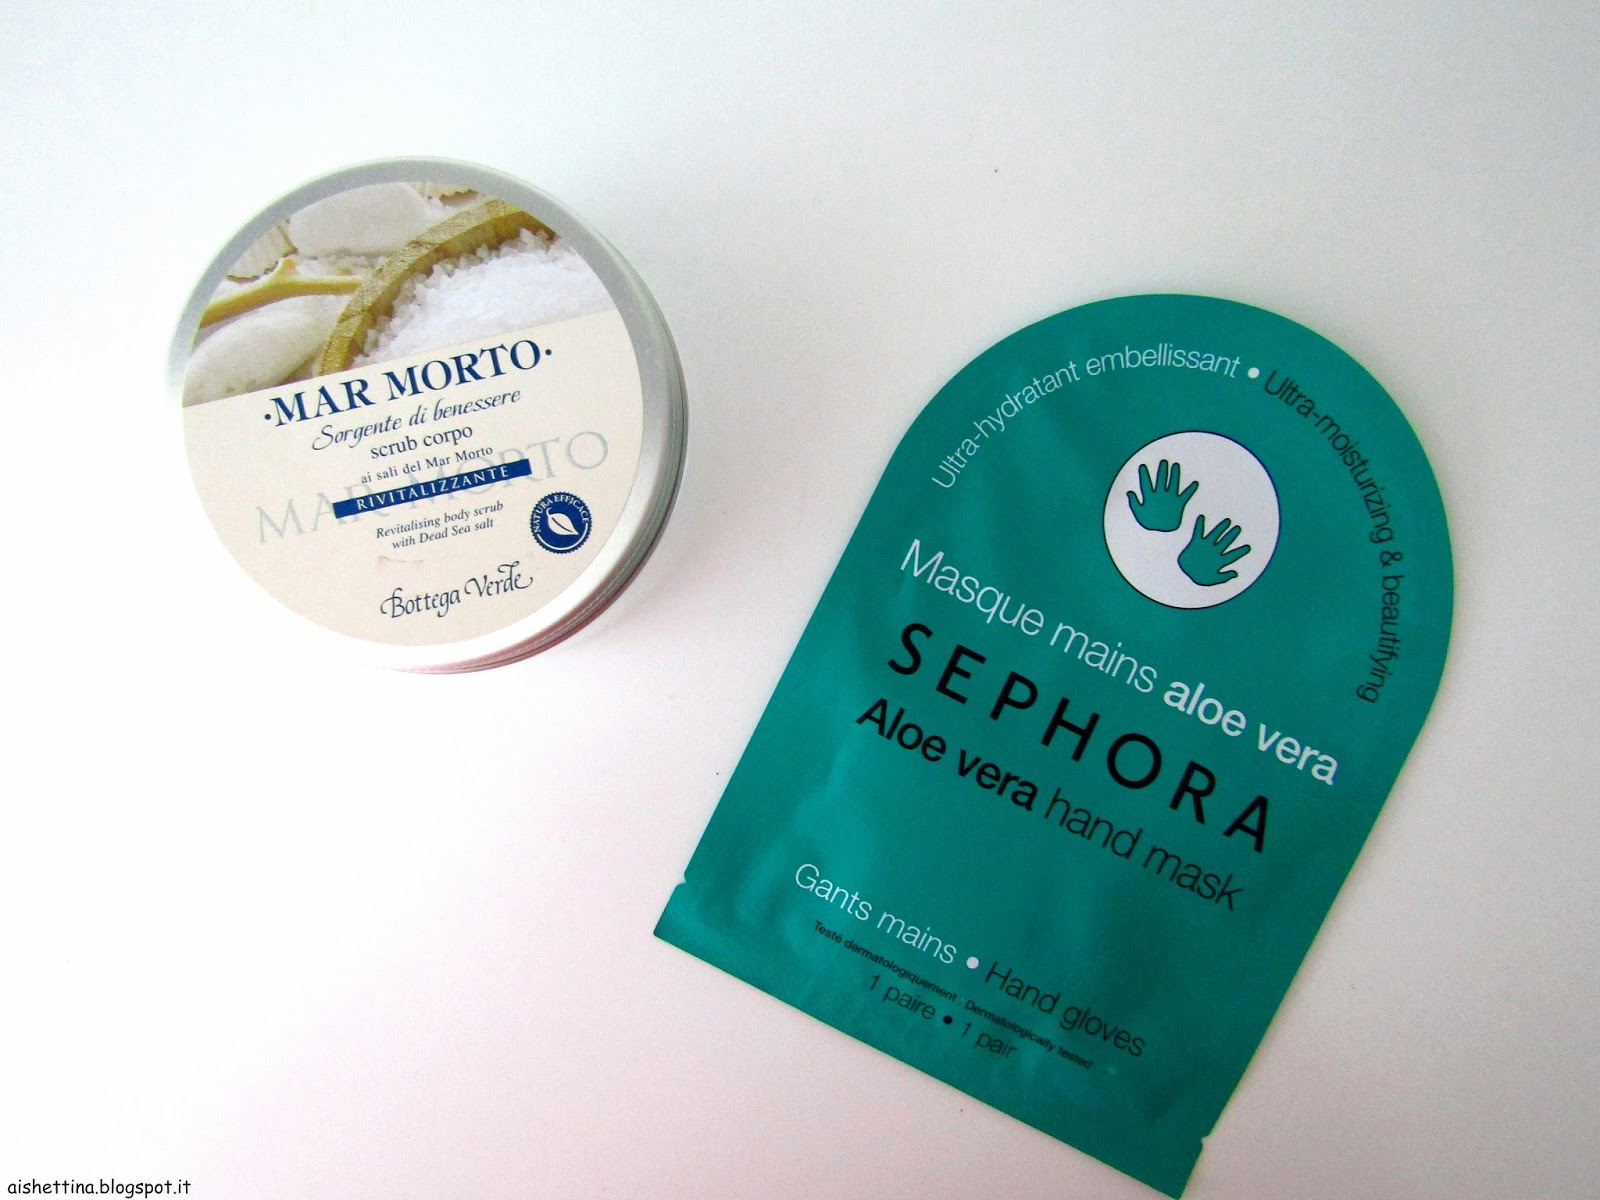 sephora hand mask and bottega verde scrub